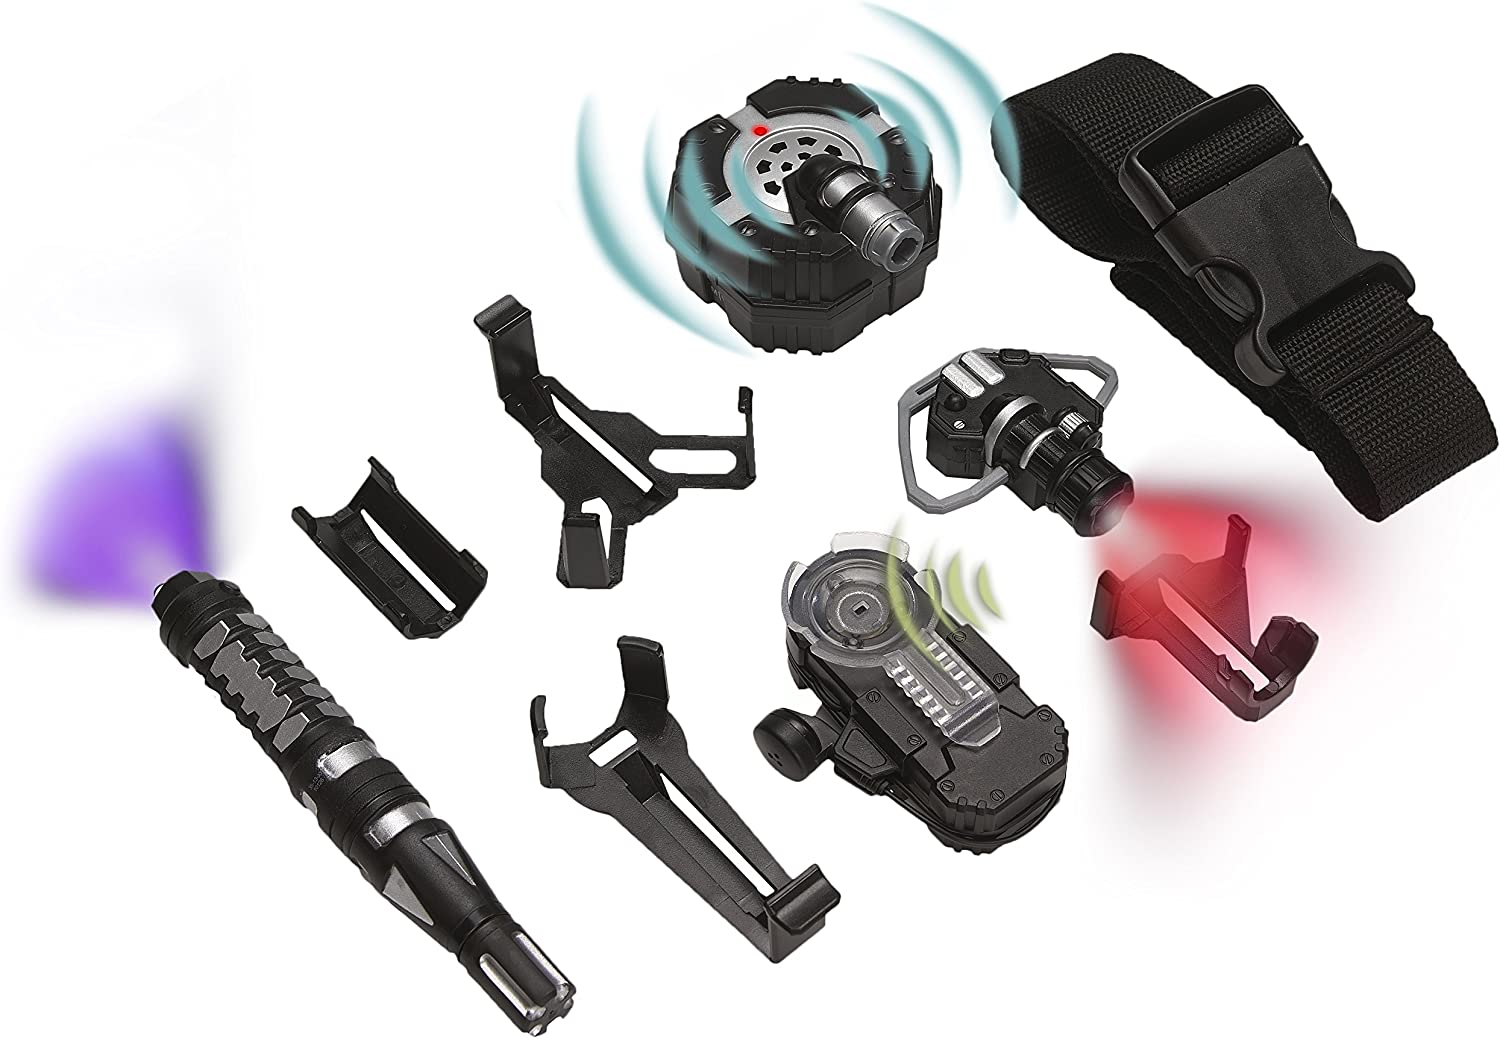 SpyX Micro Gear Set - 4 Must-Have Spy Tools with  Adjustable Belt